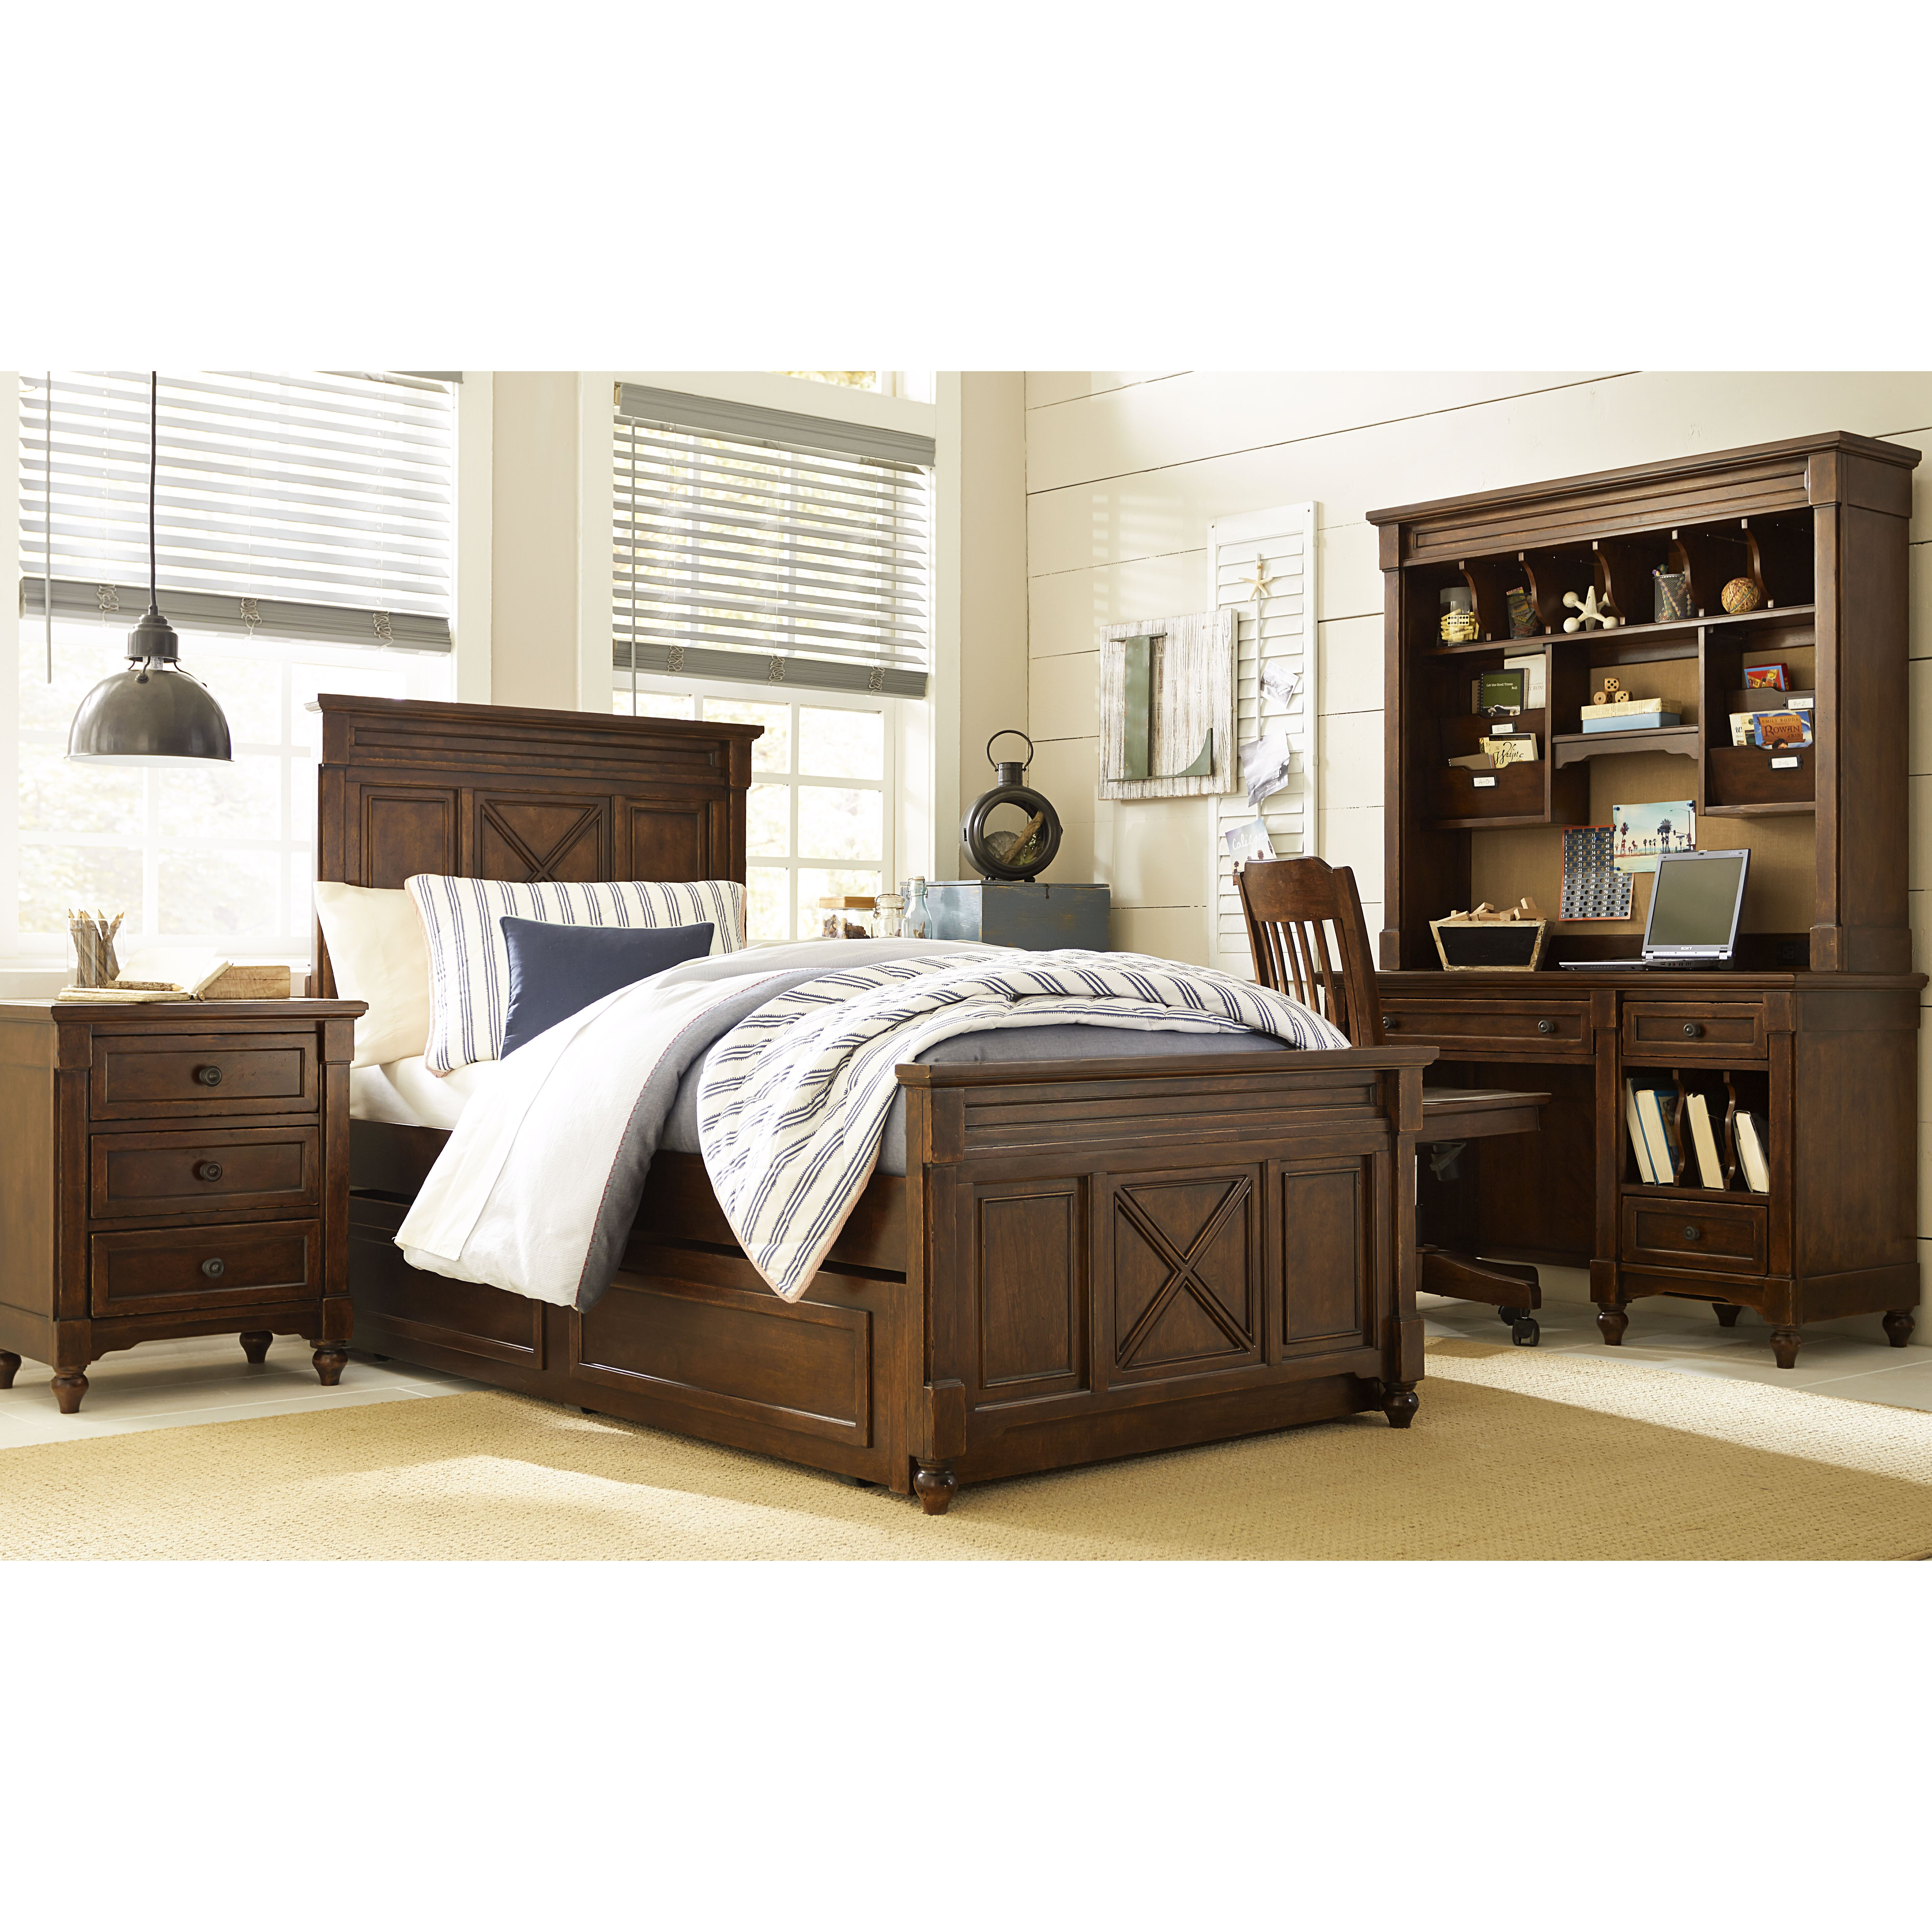 Wendy Bellissimo By Lc Kids Big Sur By Wendy Bellissimo Twin Panel Bed Reviews Wayfair